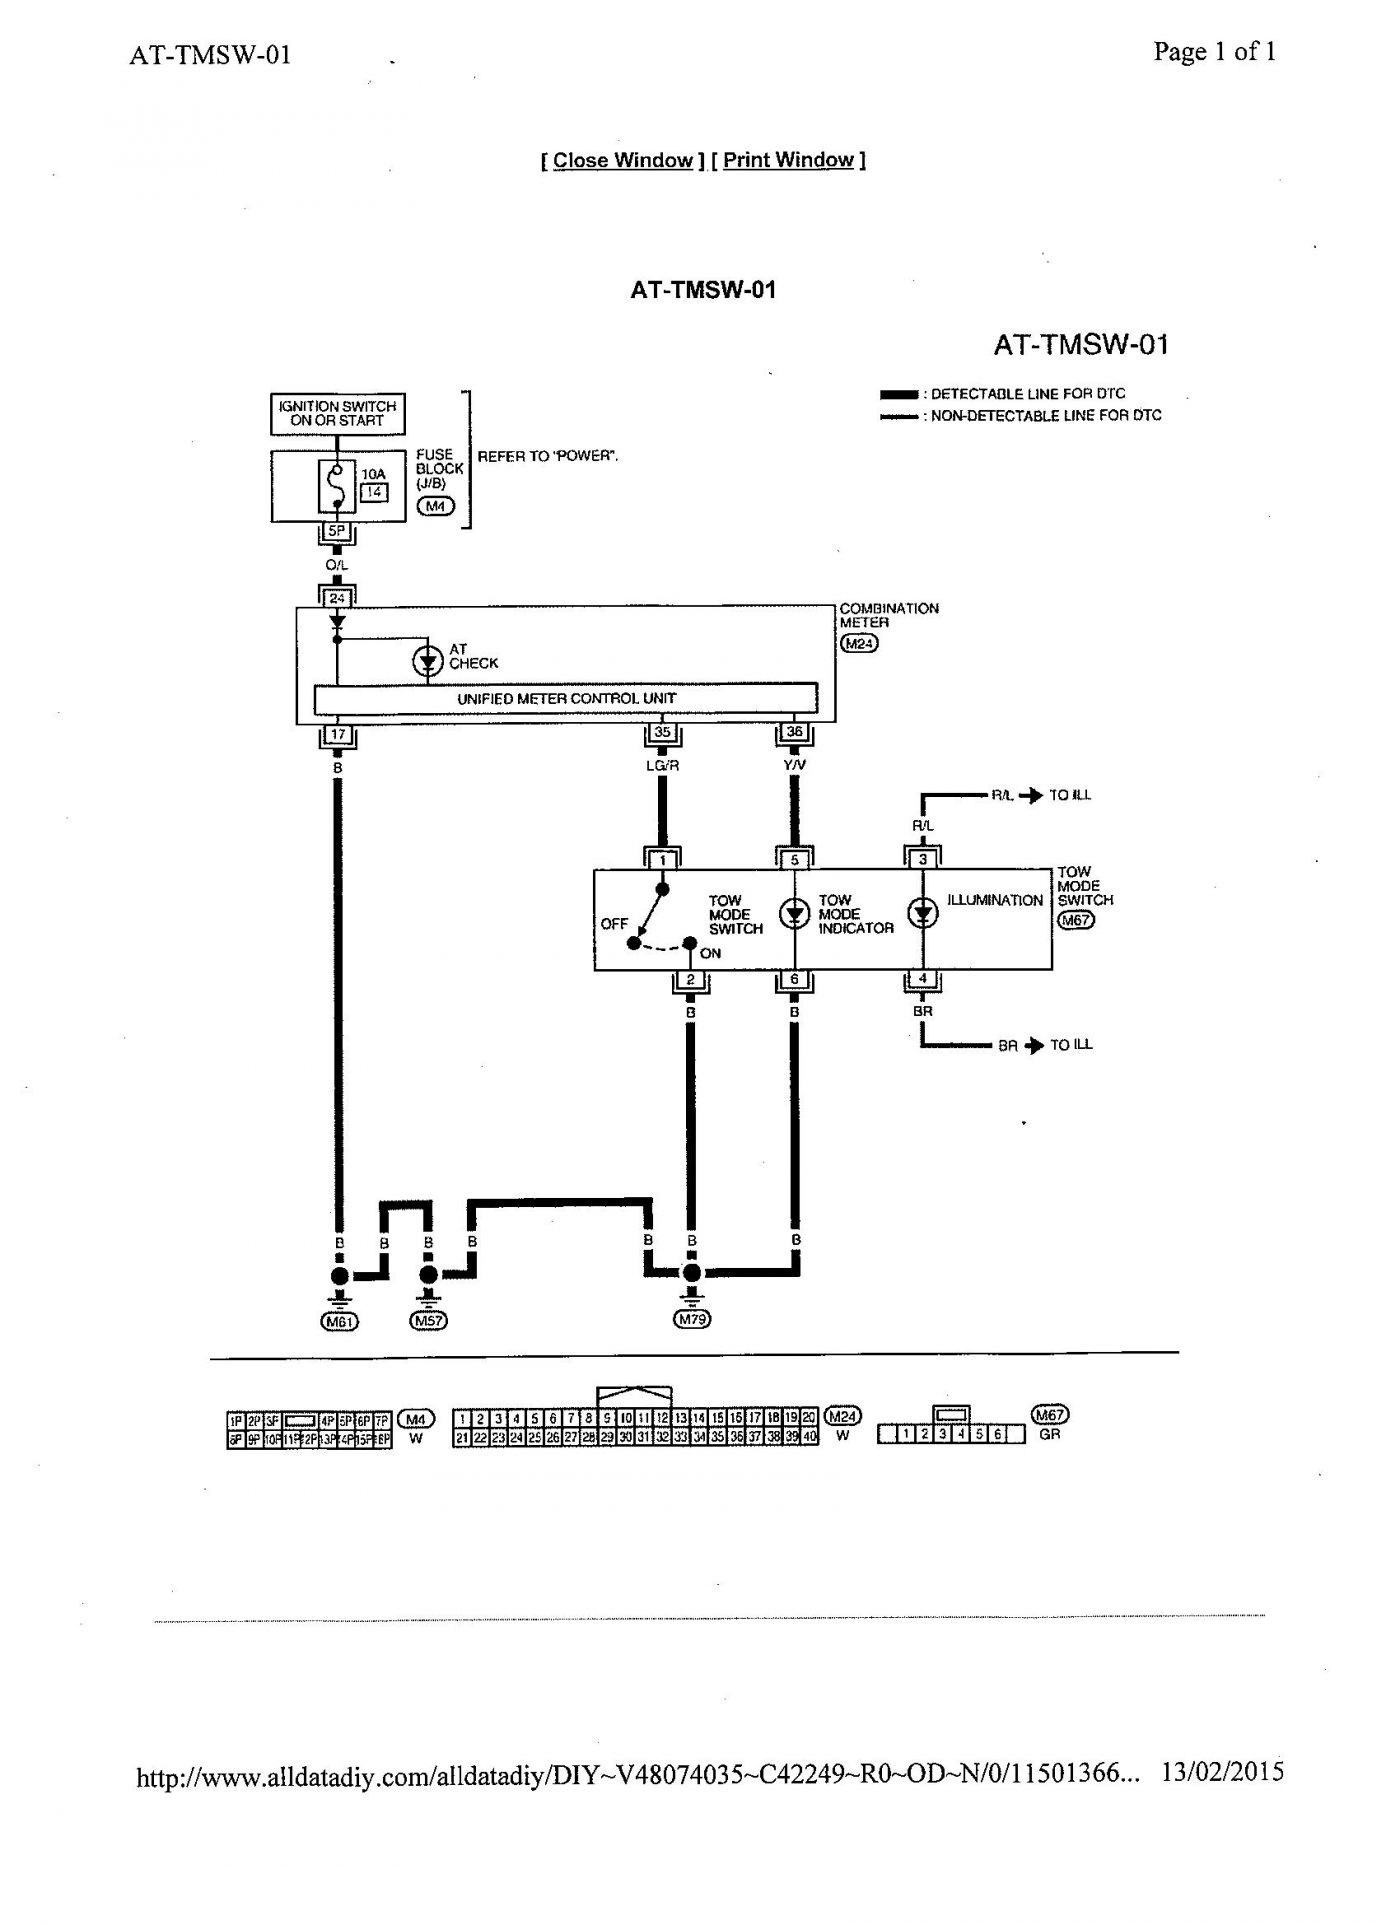 spdt toggle switch wiring diagram Collection-Dpdt Switch Wiring Diagram Guitar New Dpdt Switch Wiring Diagram Inspirational Spst toggle Switch Wiring 1-b